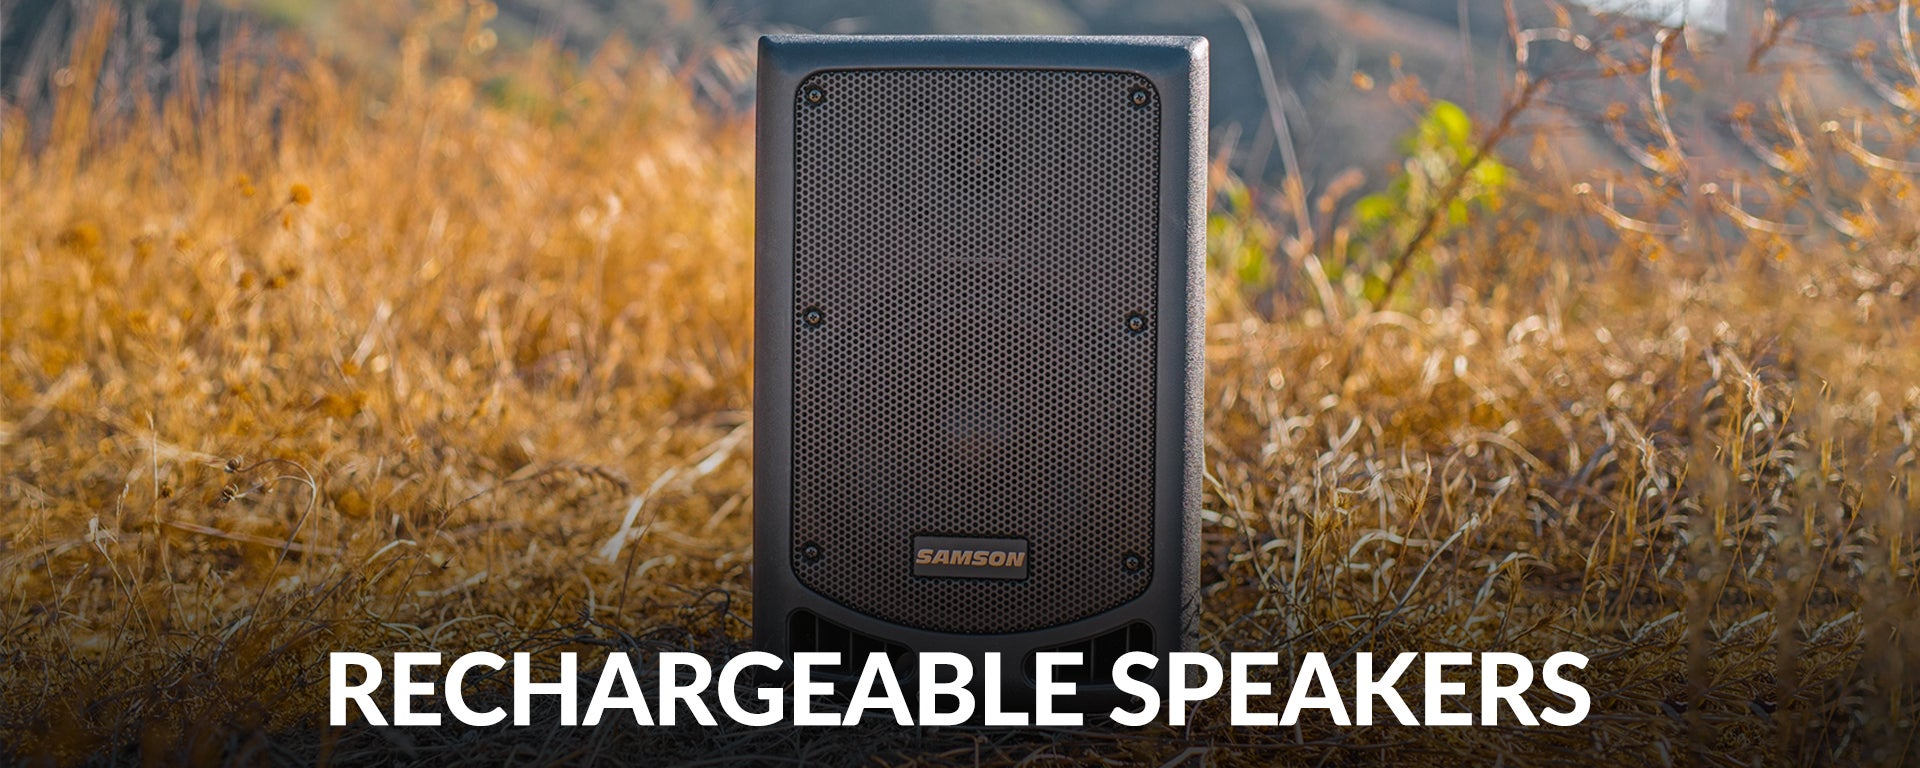 Rechargeable Speakers at SamAsh.com